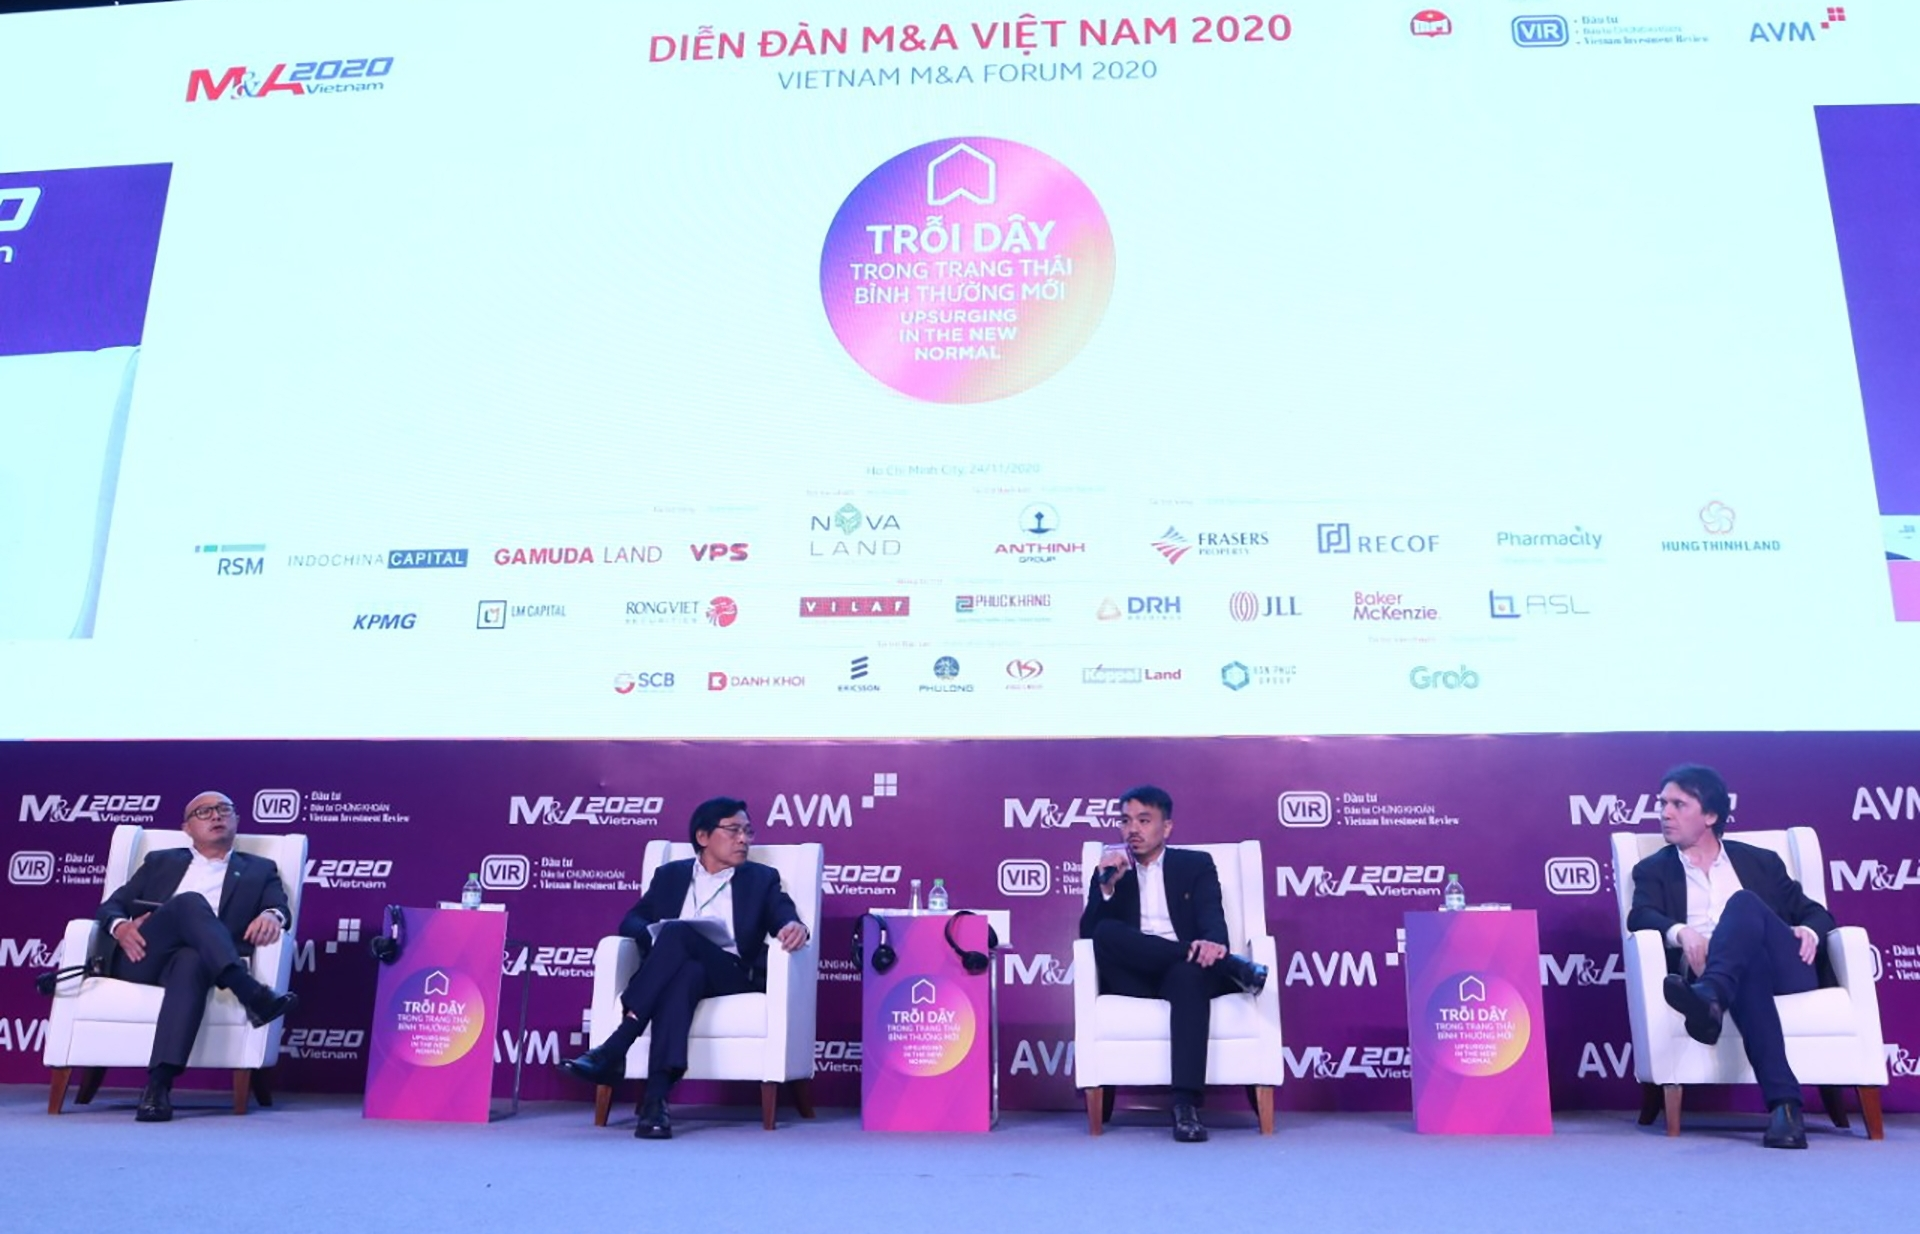 Experts pinpoint M&A opportunities in new normal (photos)